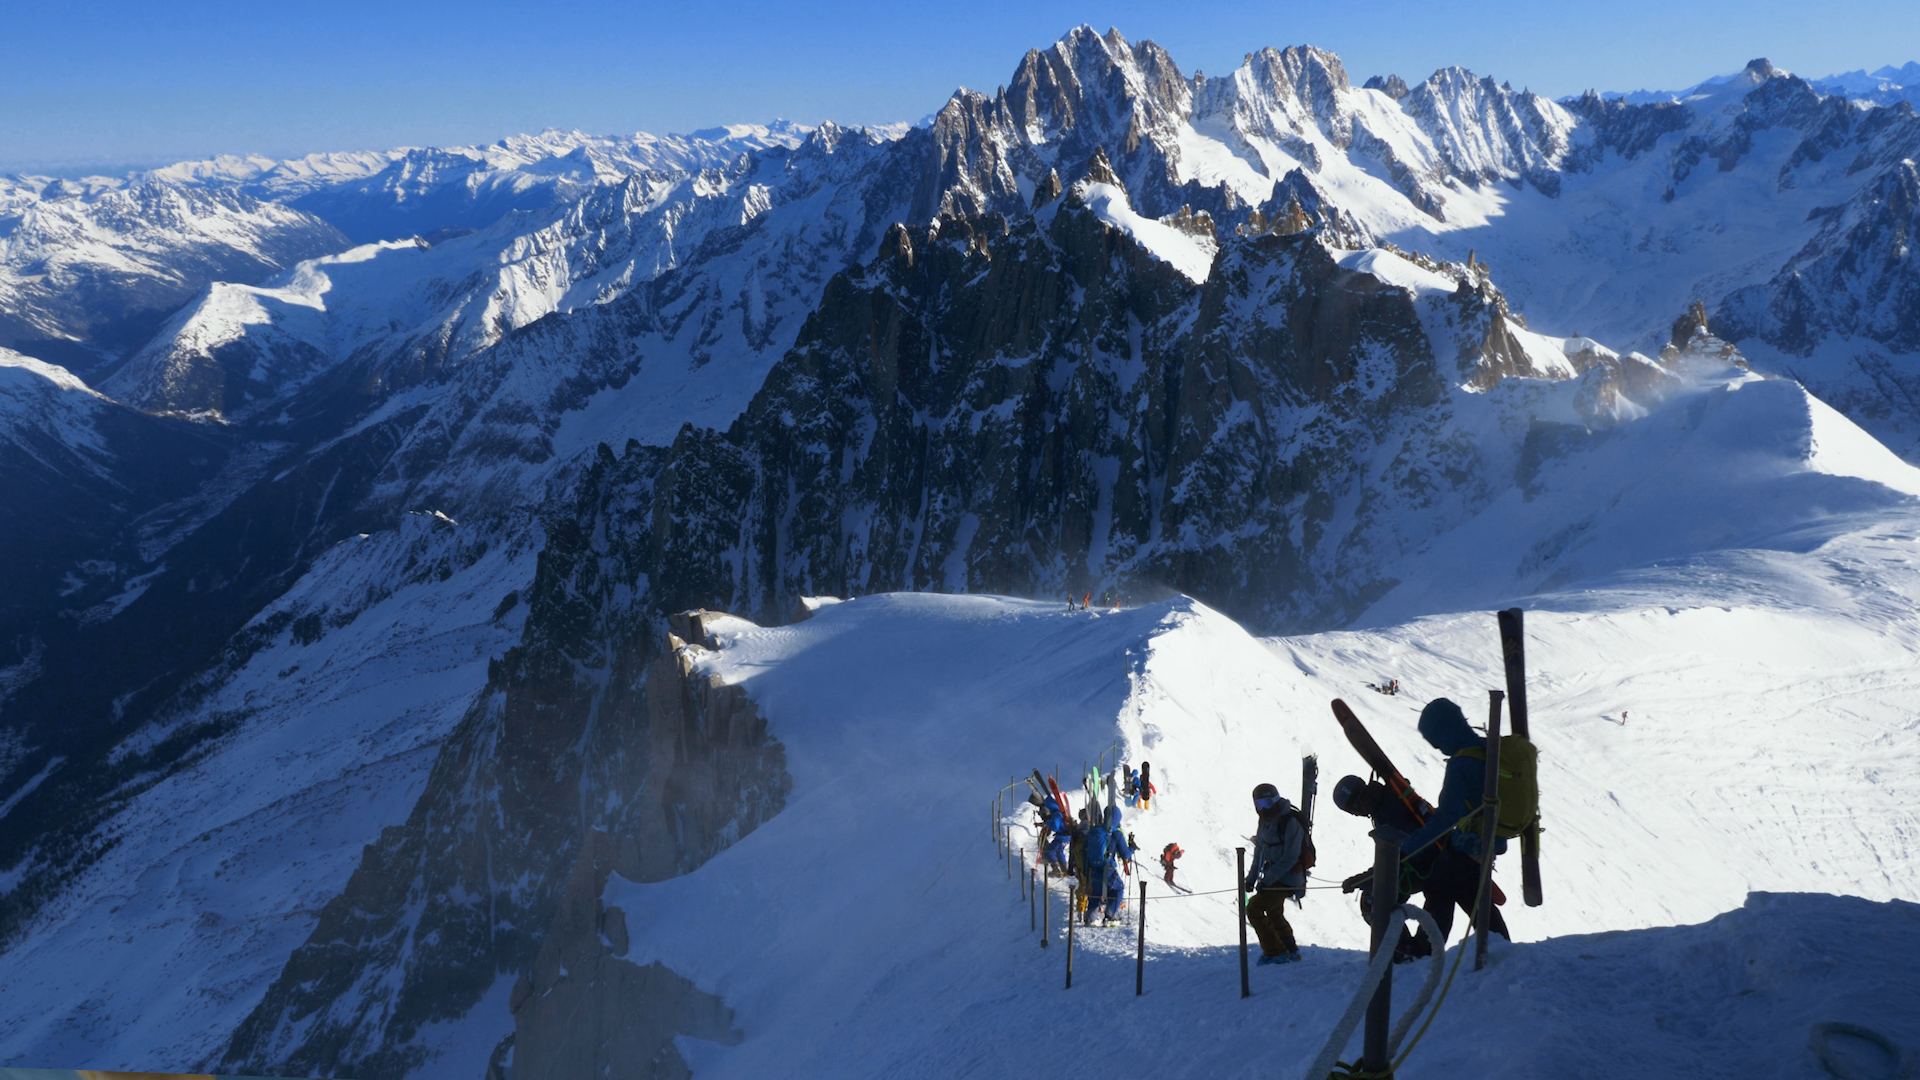 Skiers walk down the snowy ridge of the Arete towards the Vallee Blanche below